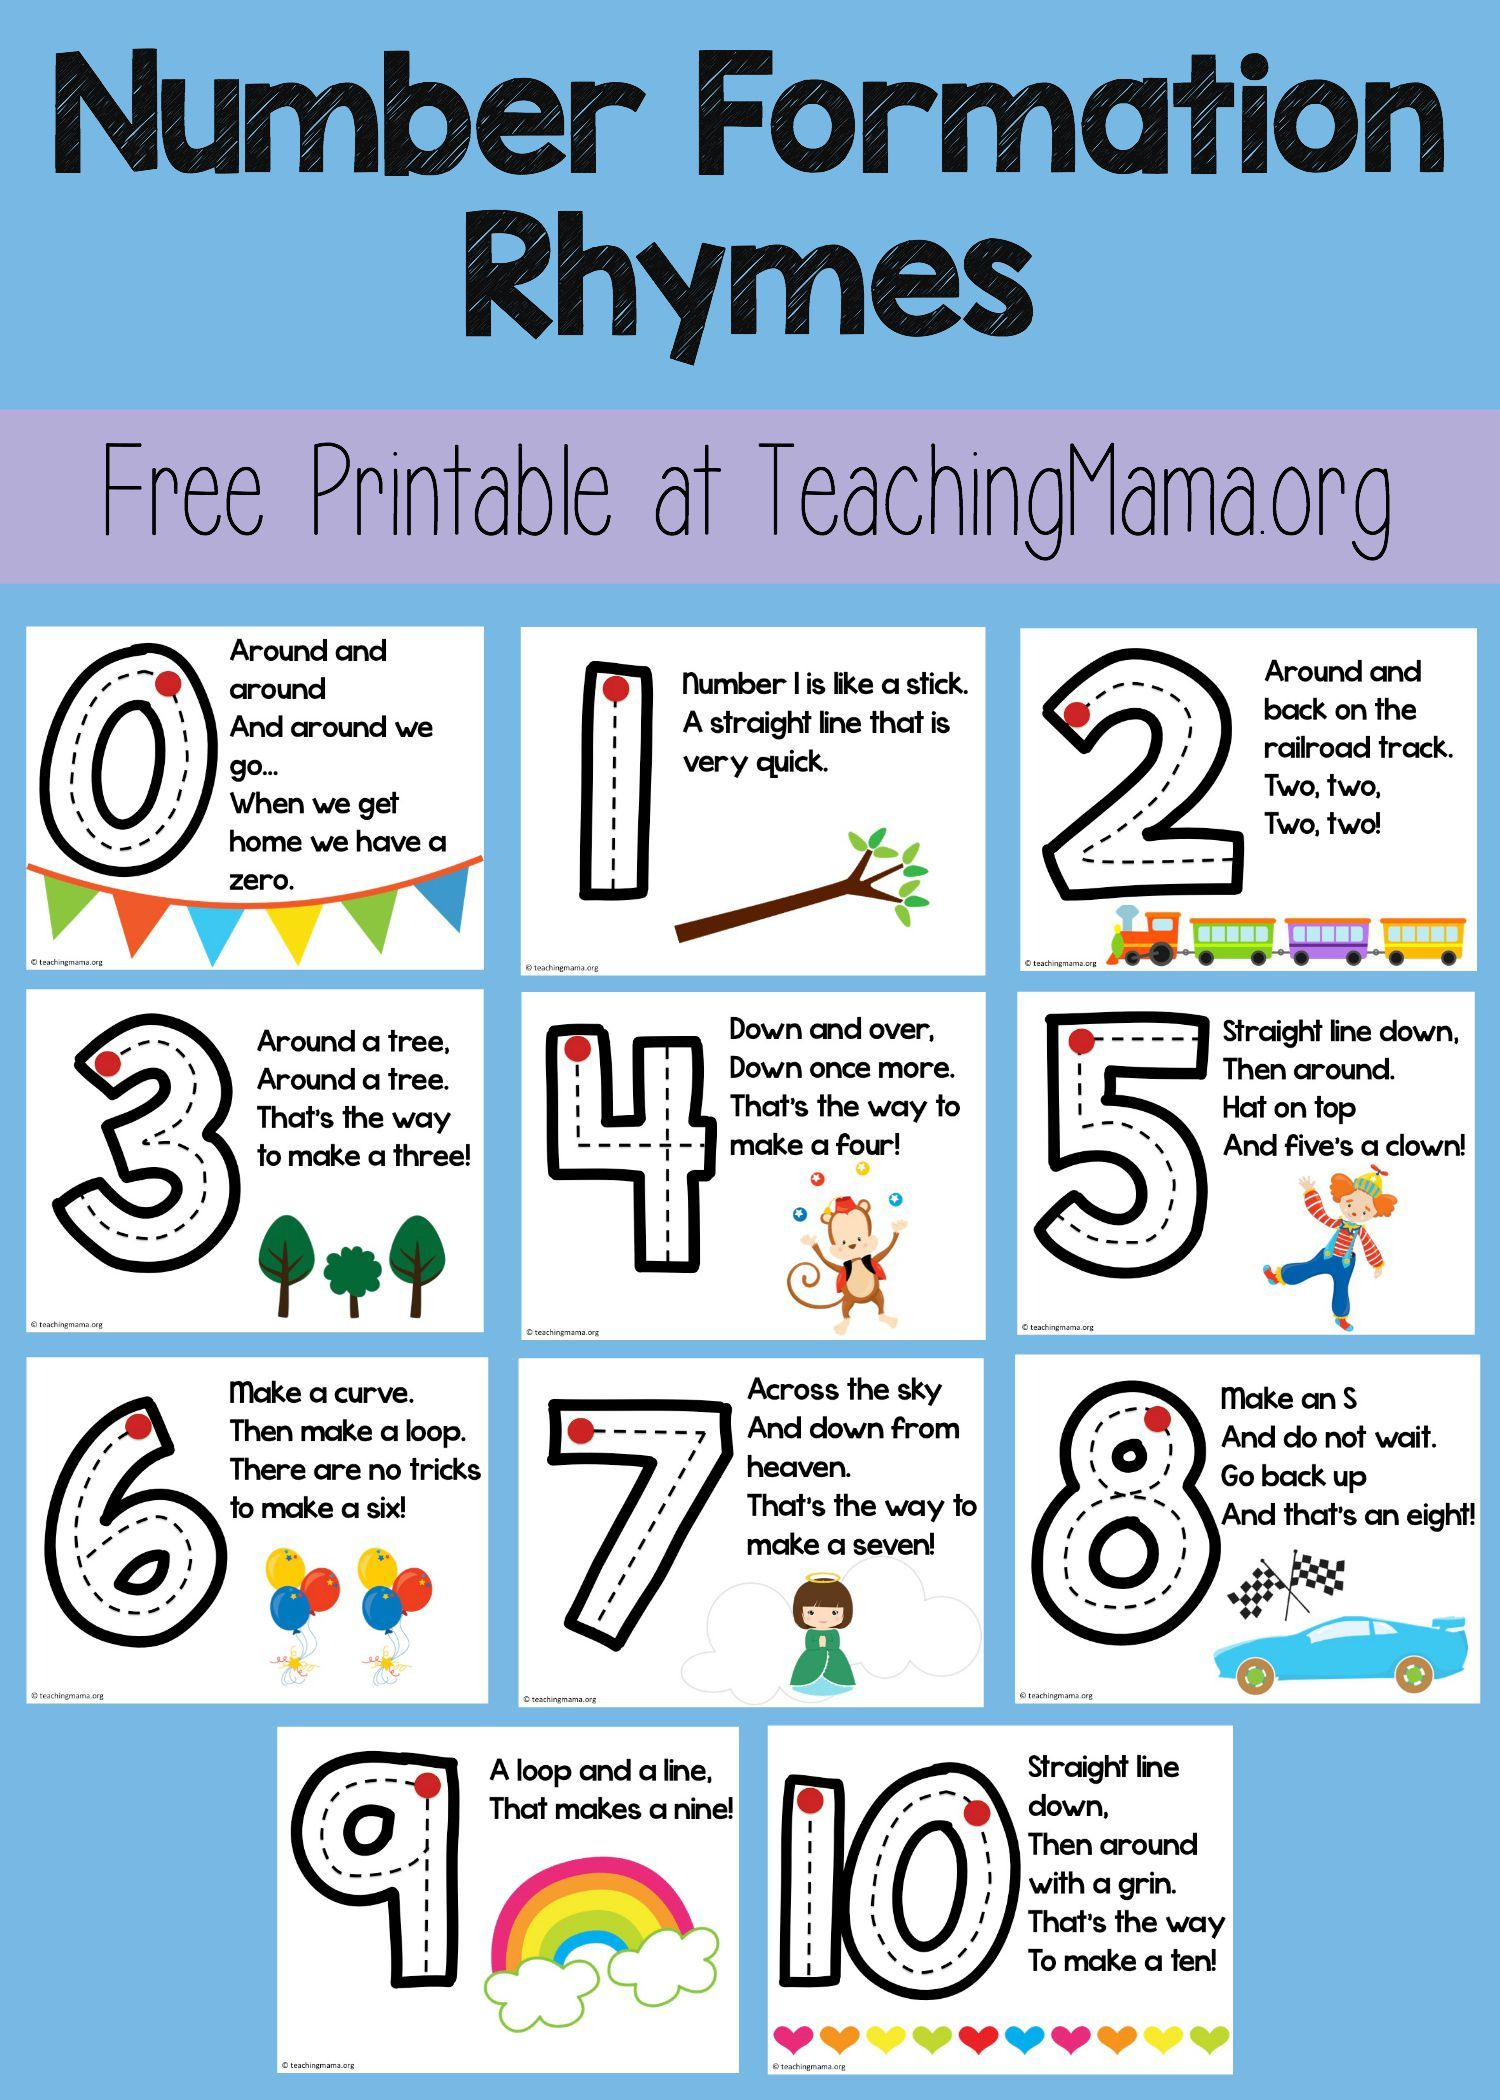 Number Formation Rhymes | Pinterest | Number formation, Number and ...